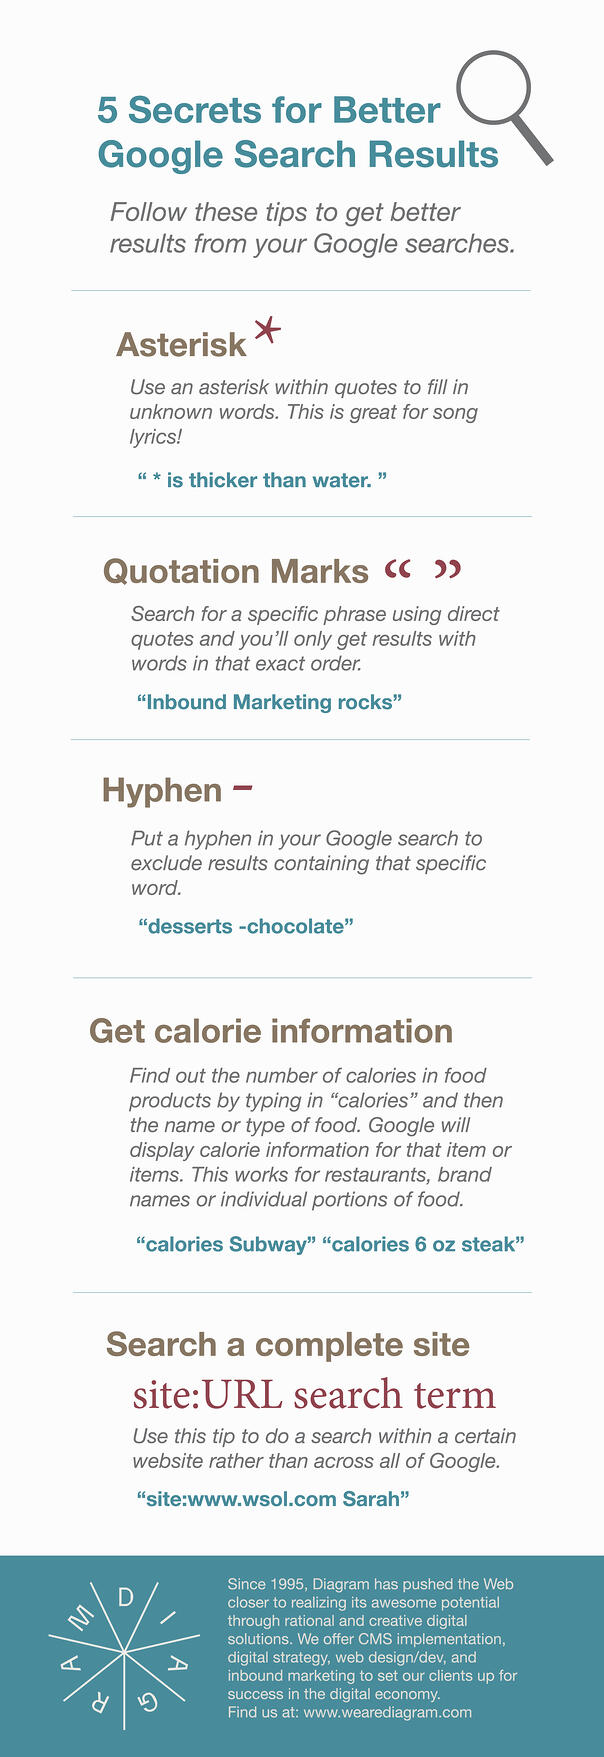 Tips for Getting Better Google Searches